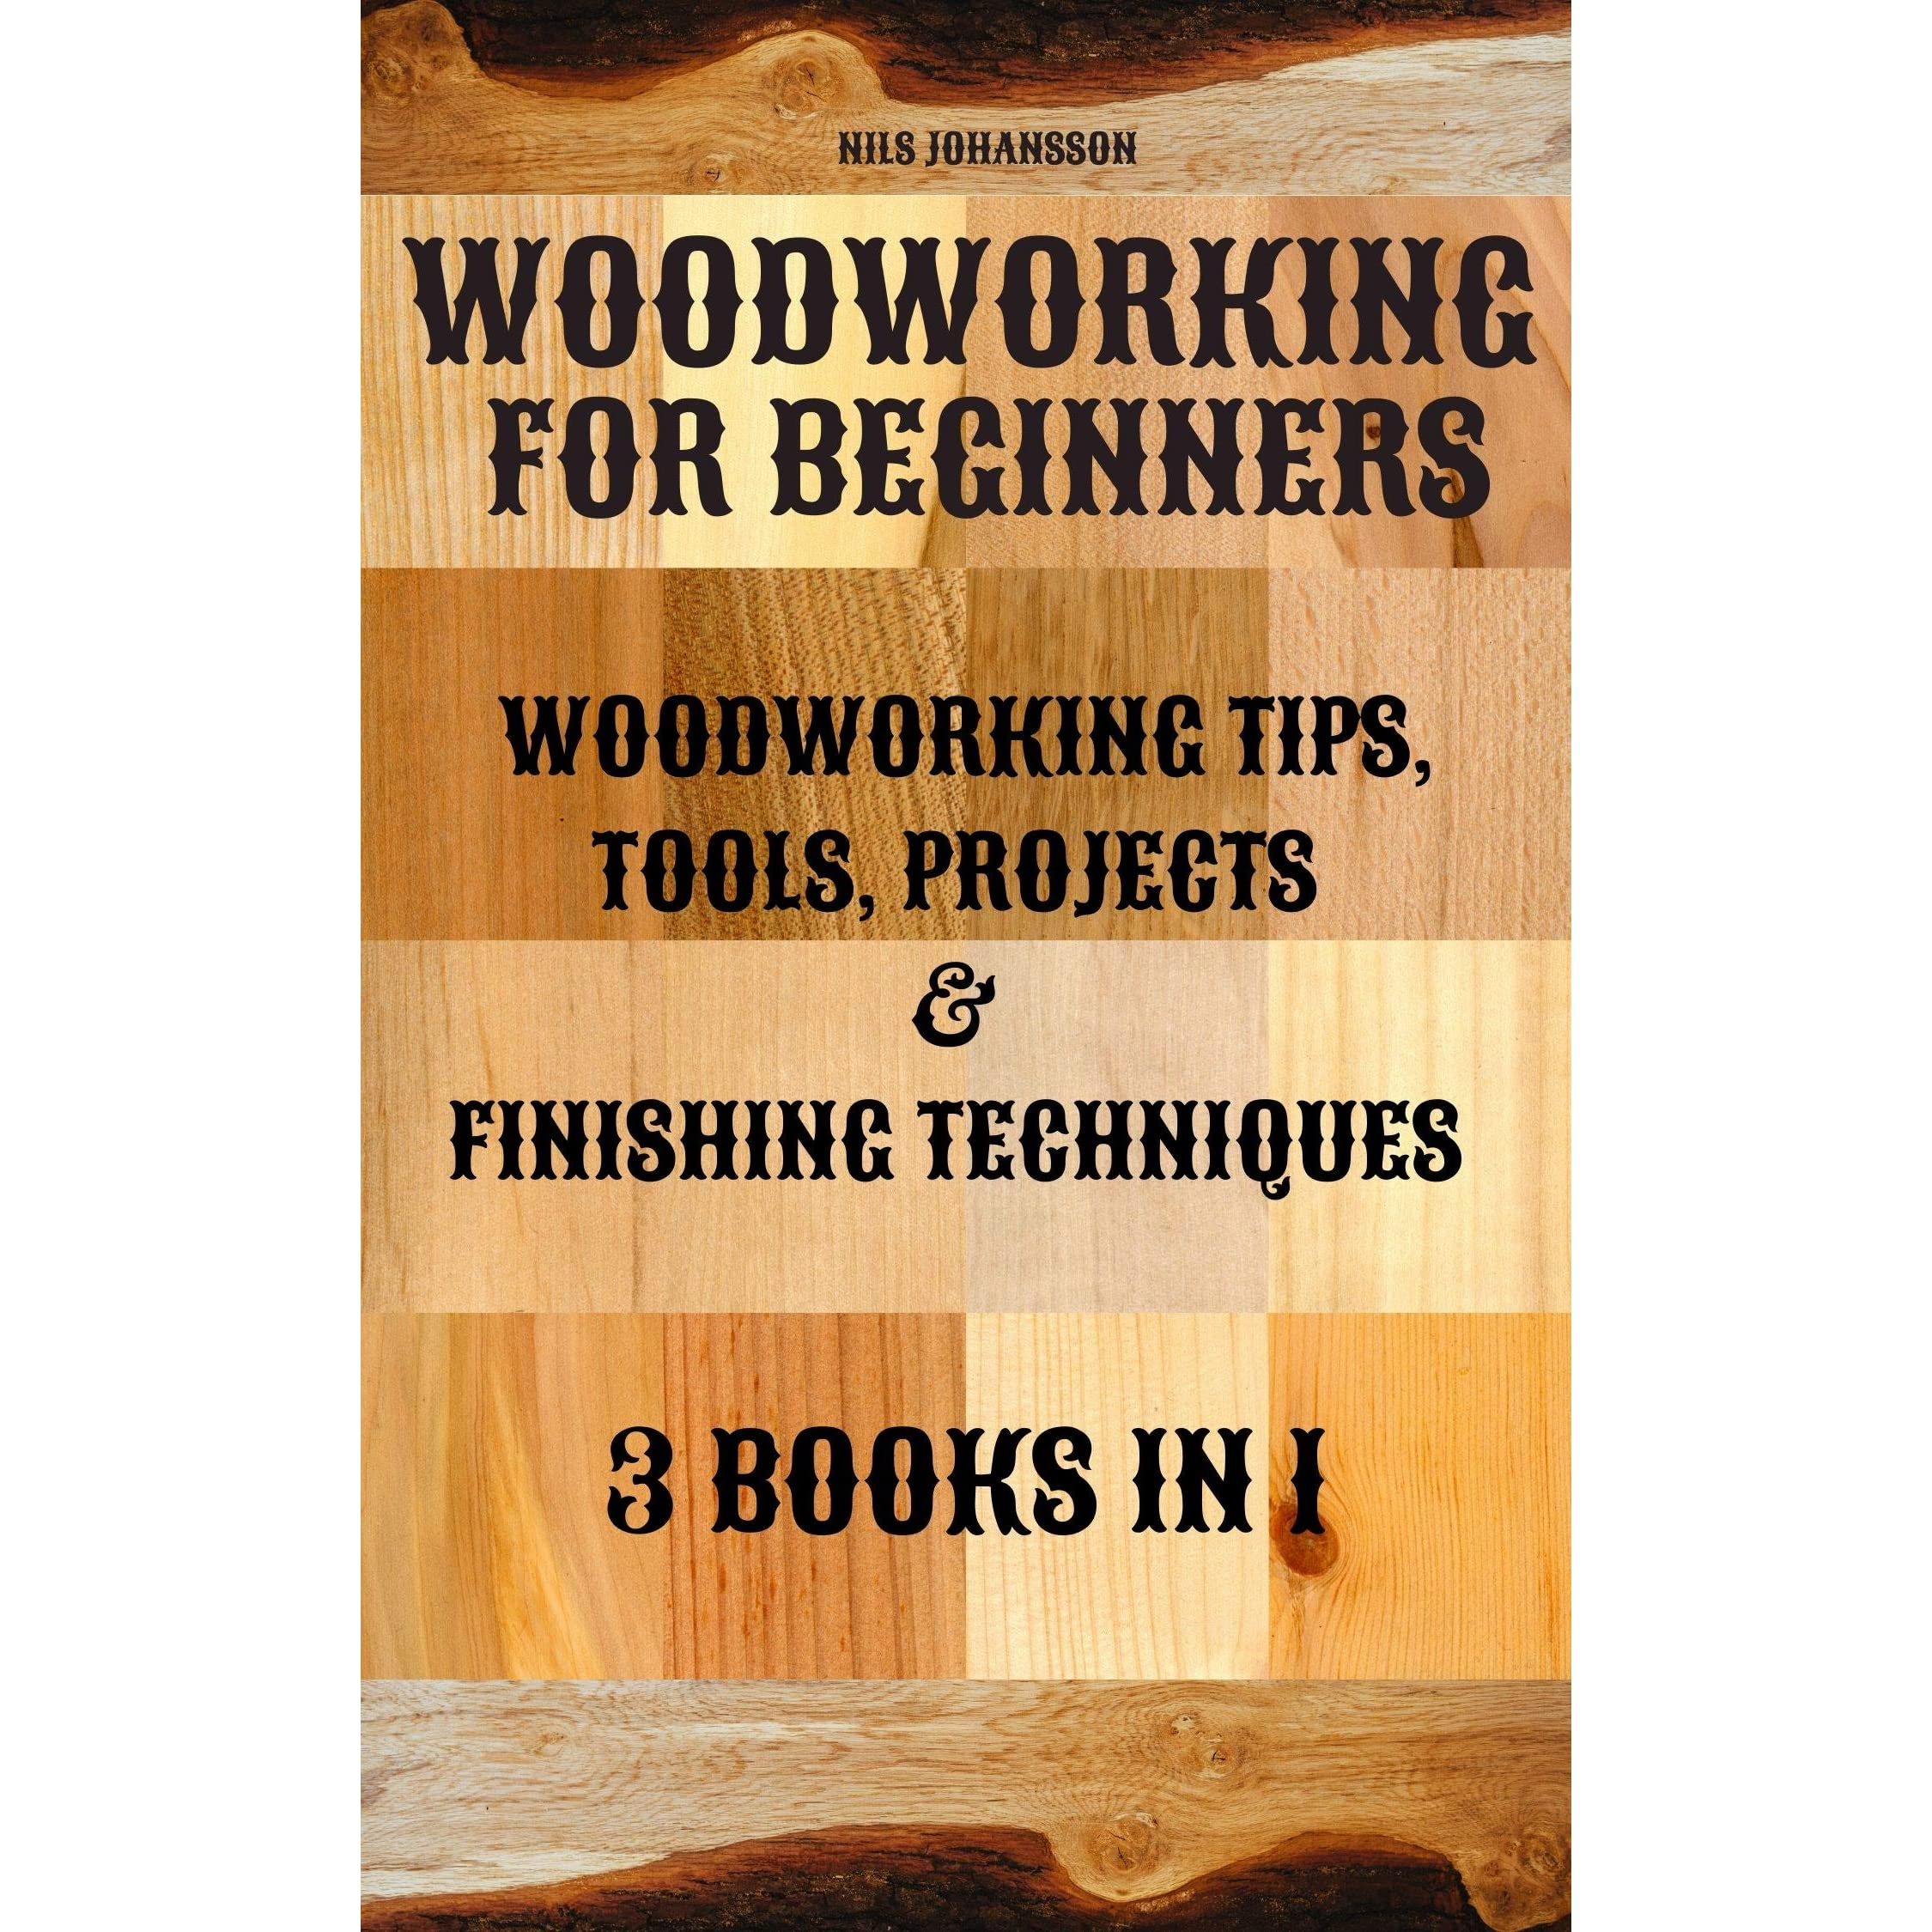 Woodworking For Beginners Woodworking Tips Tools Projects Finishing Techniques 3 Books In 1 By Nils Johansson